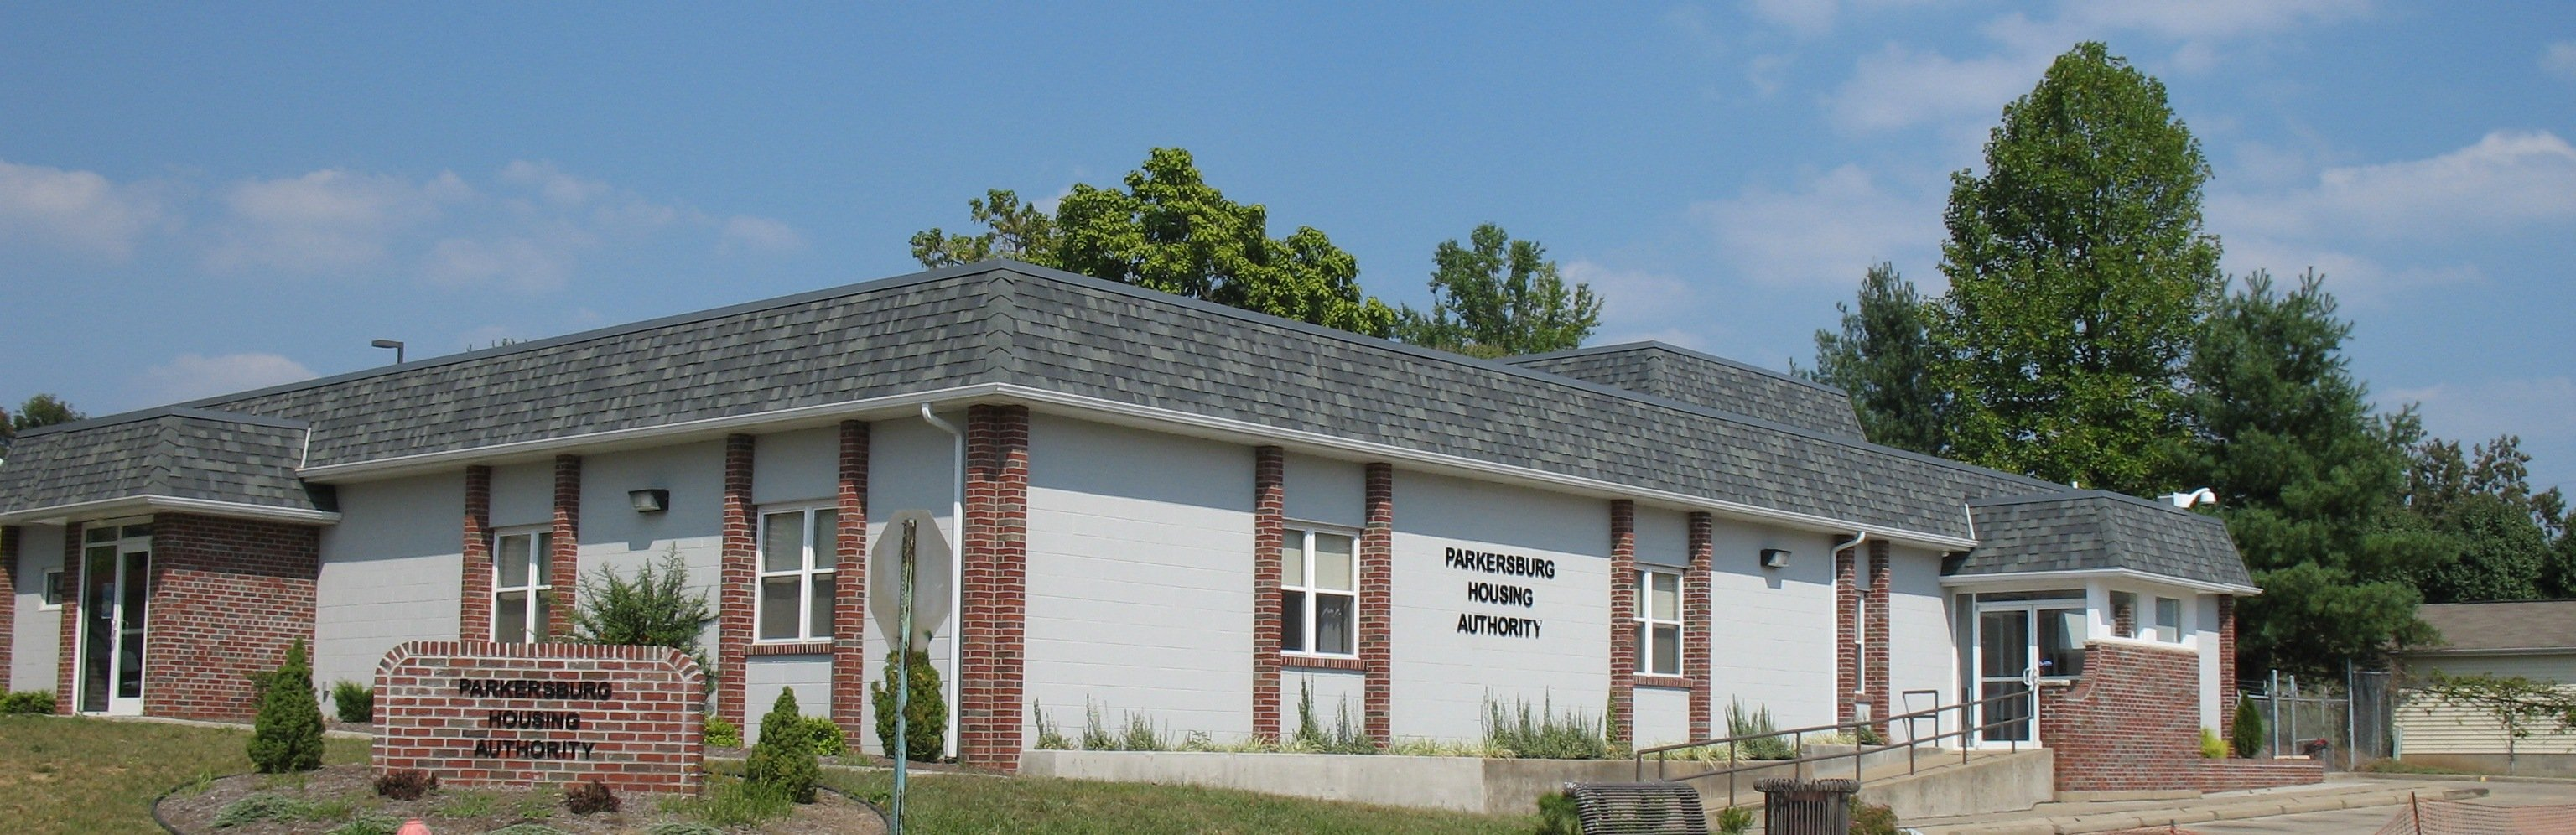 Parkersburg Housing Authority (PHA)